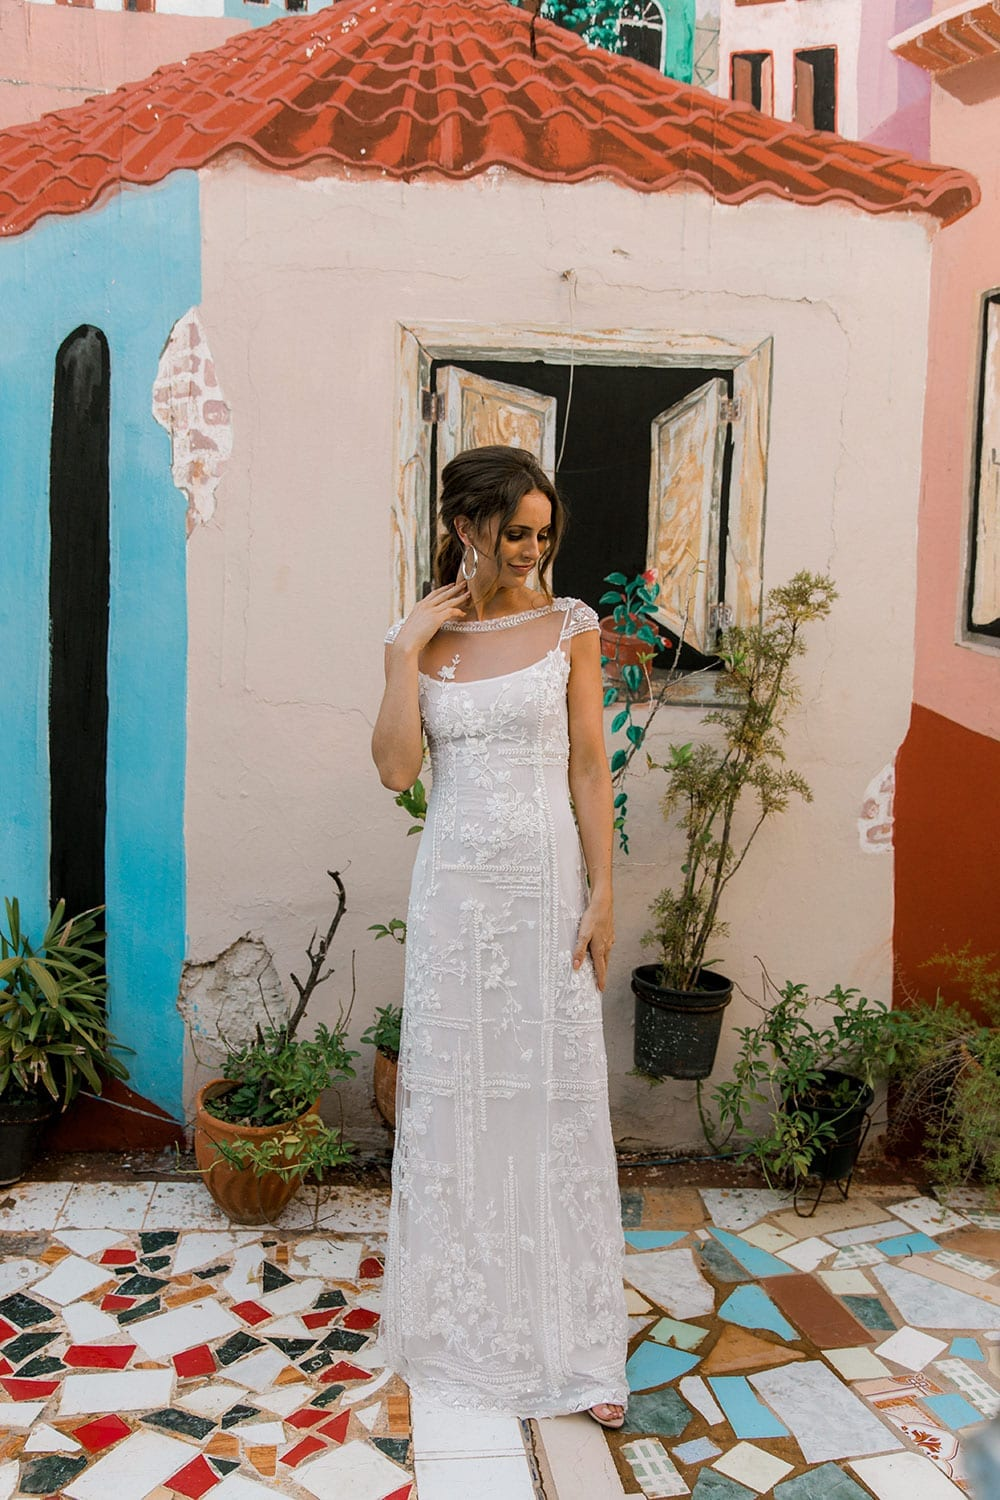 Model wearing Vinka Design Lola Wedding Dress, a Boat-Neck Lace Wedding Gown close up in the colourful back streets of Havana